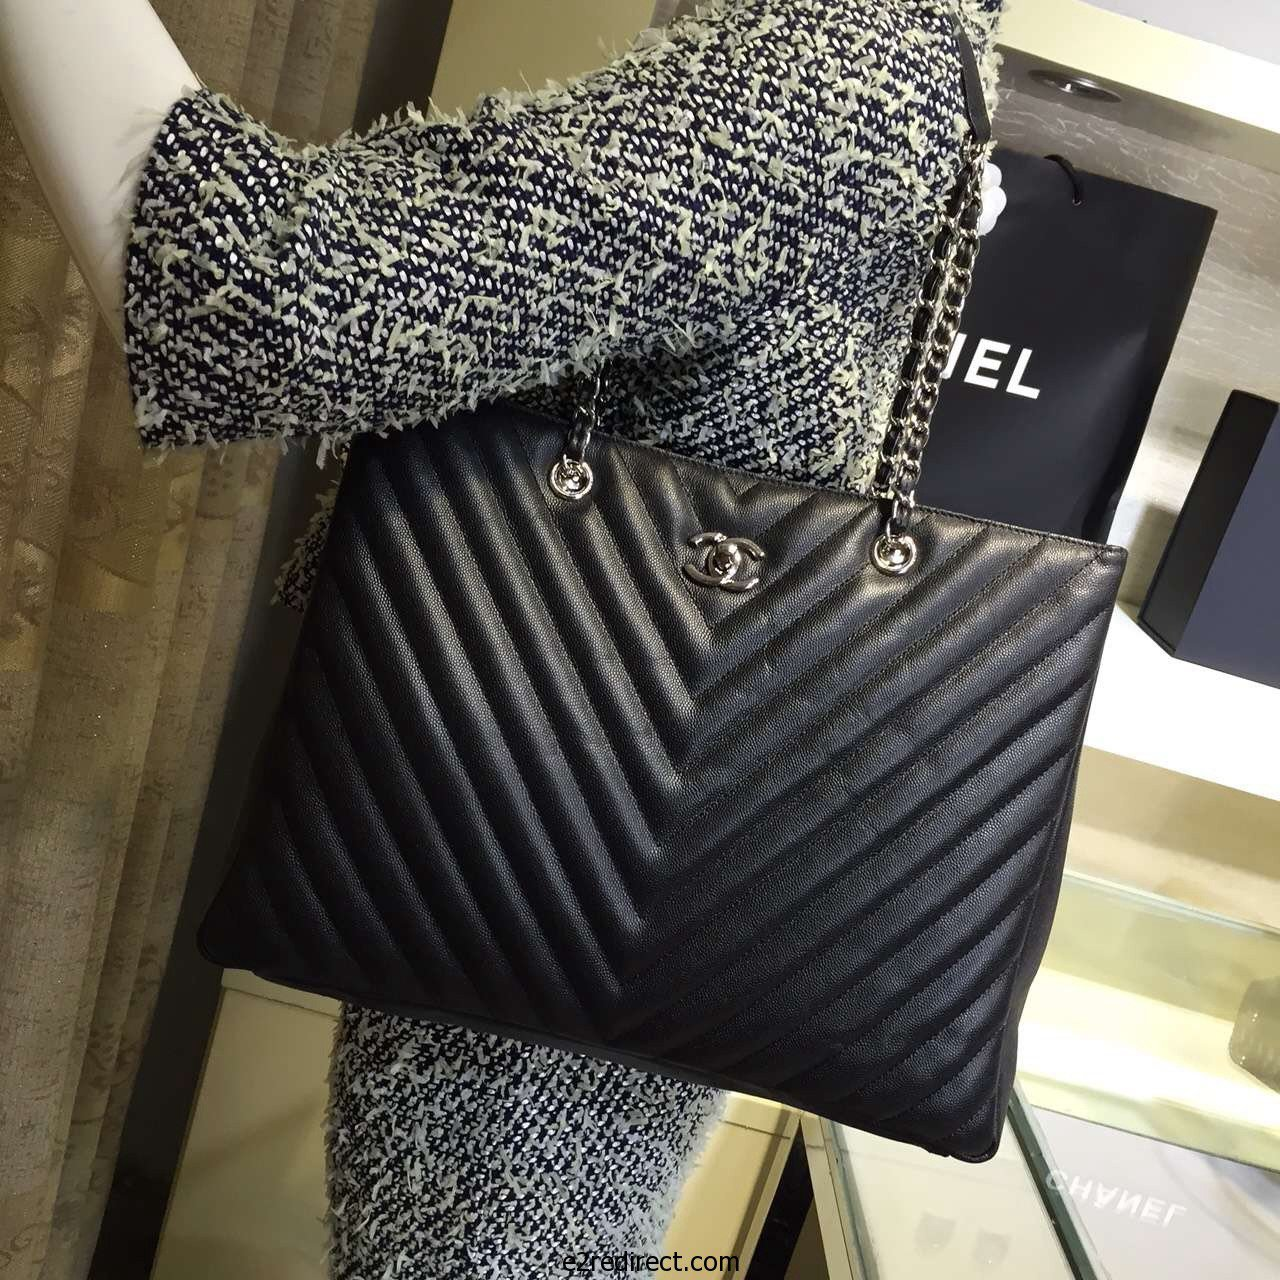 chanel-large-classic-tote-bag-5